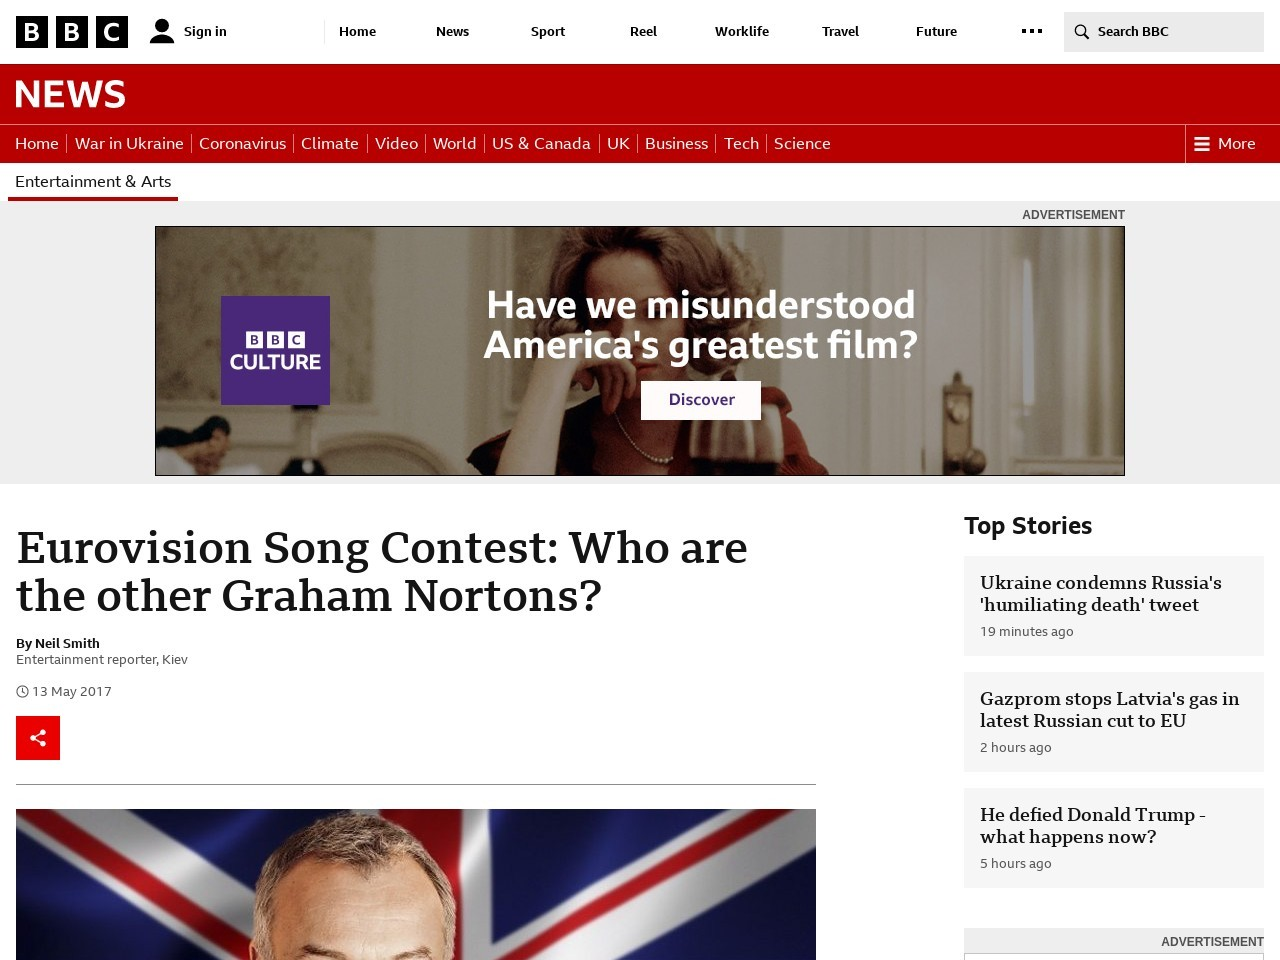 Eurovision Song Contest: Who are the other Graham Nortons?